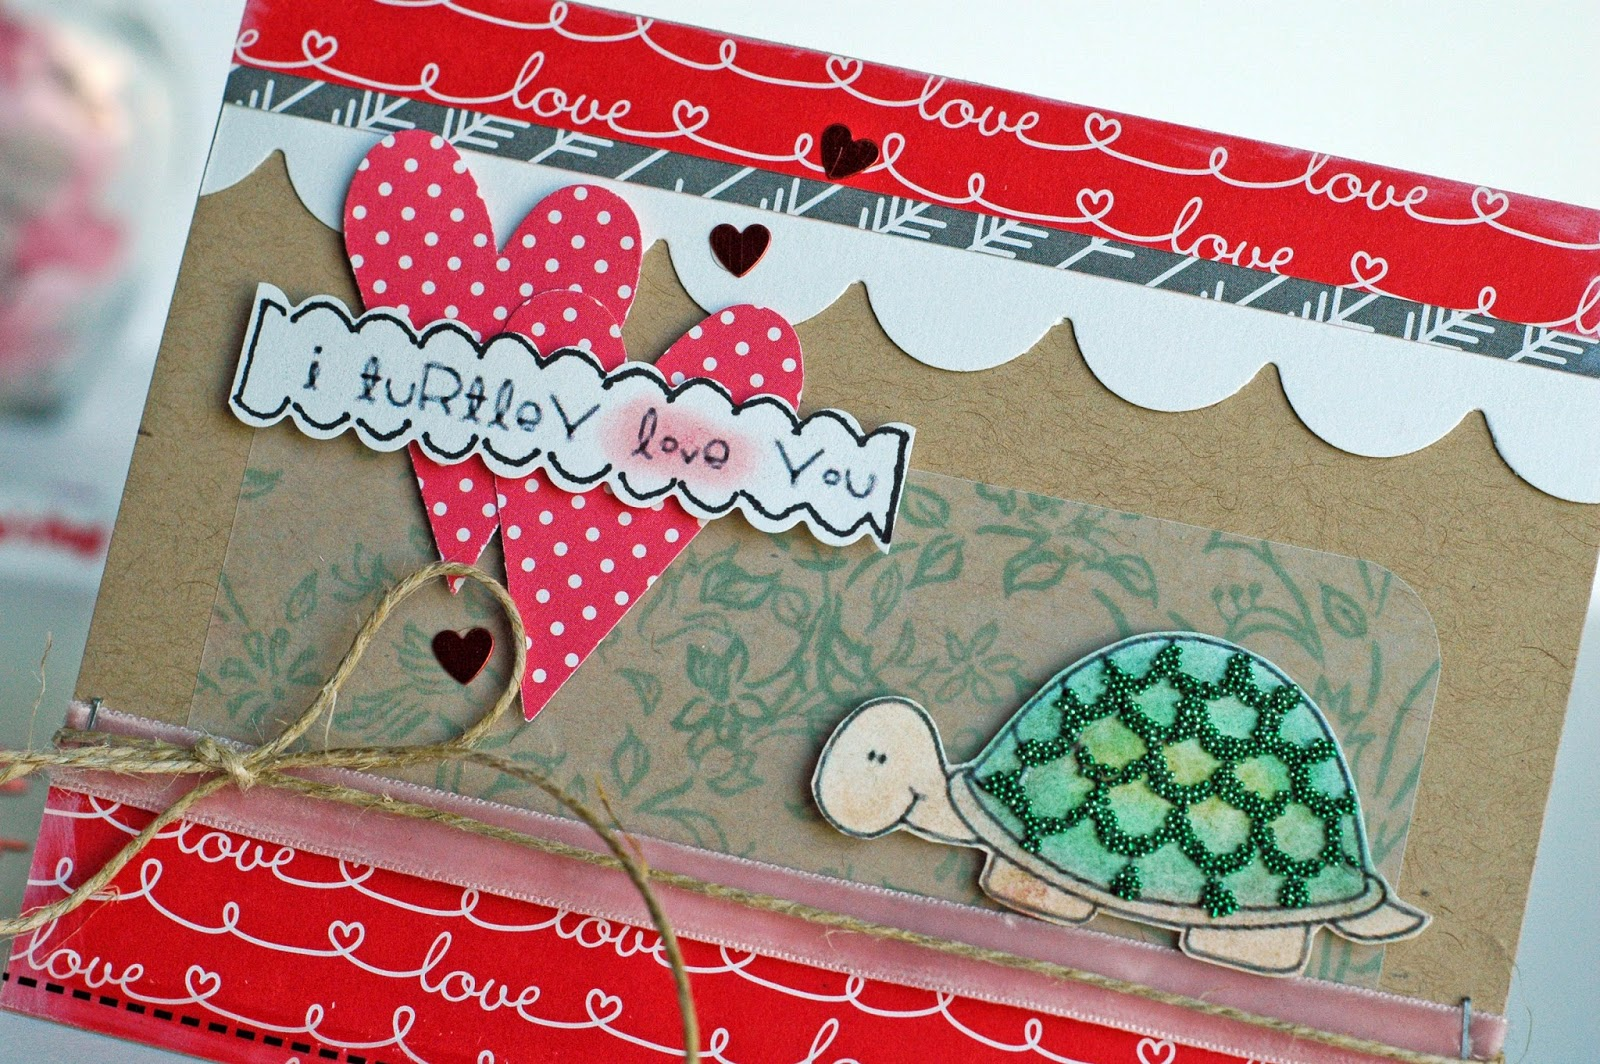 SRM Stickers Blog - I Turtley Love You Card by Cassonda - #janesdoodles #clearstamps #stickers #valentines #card